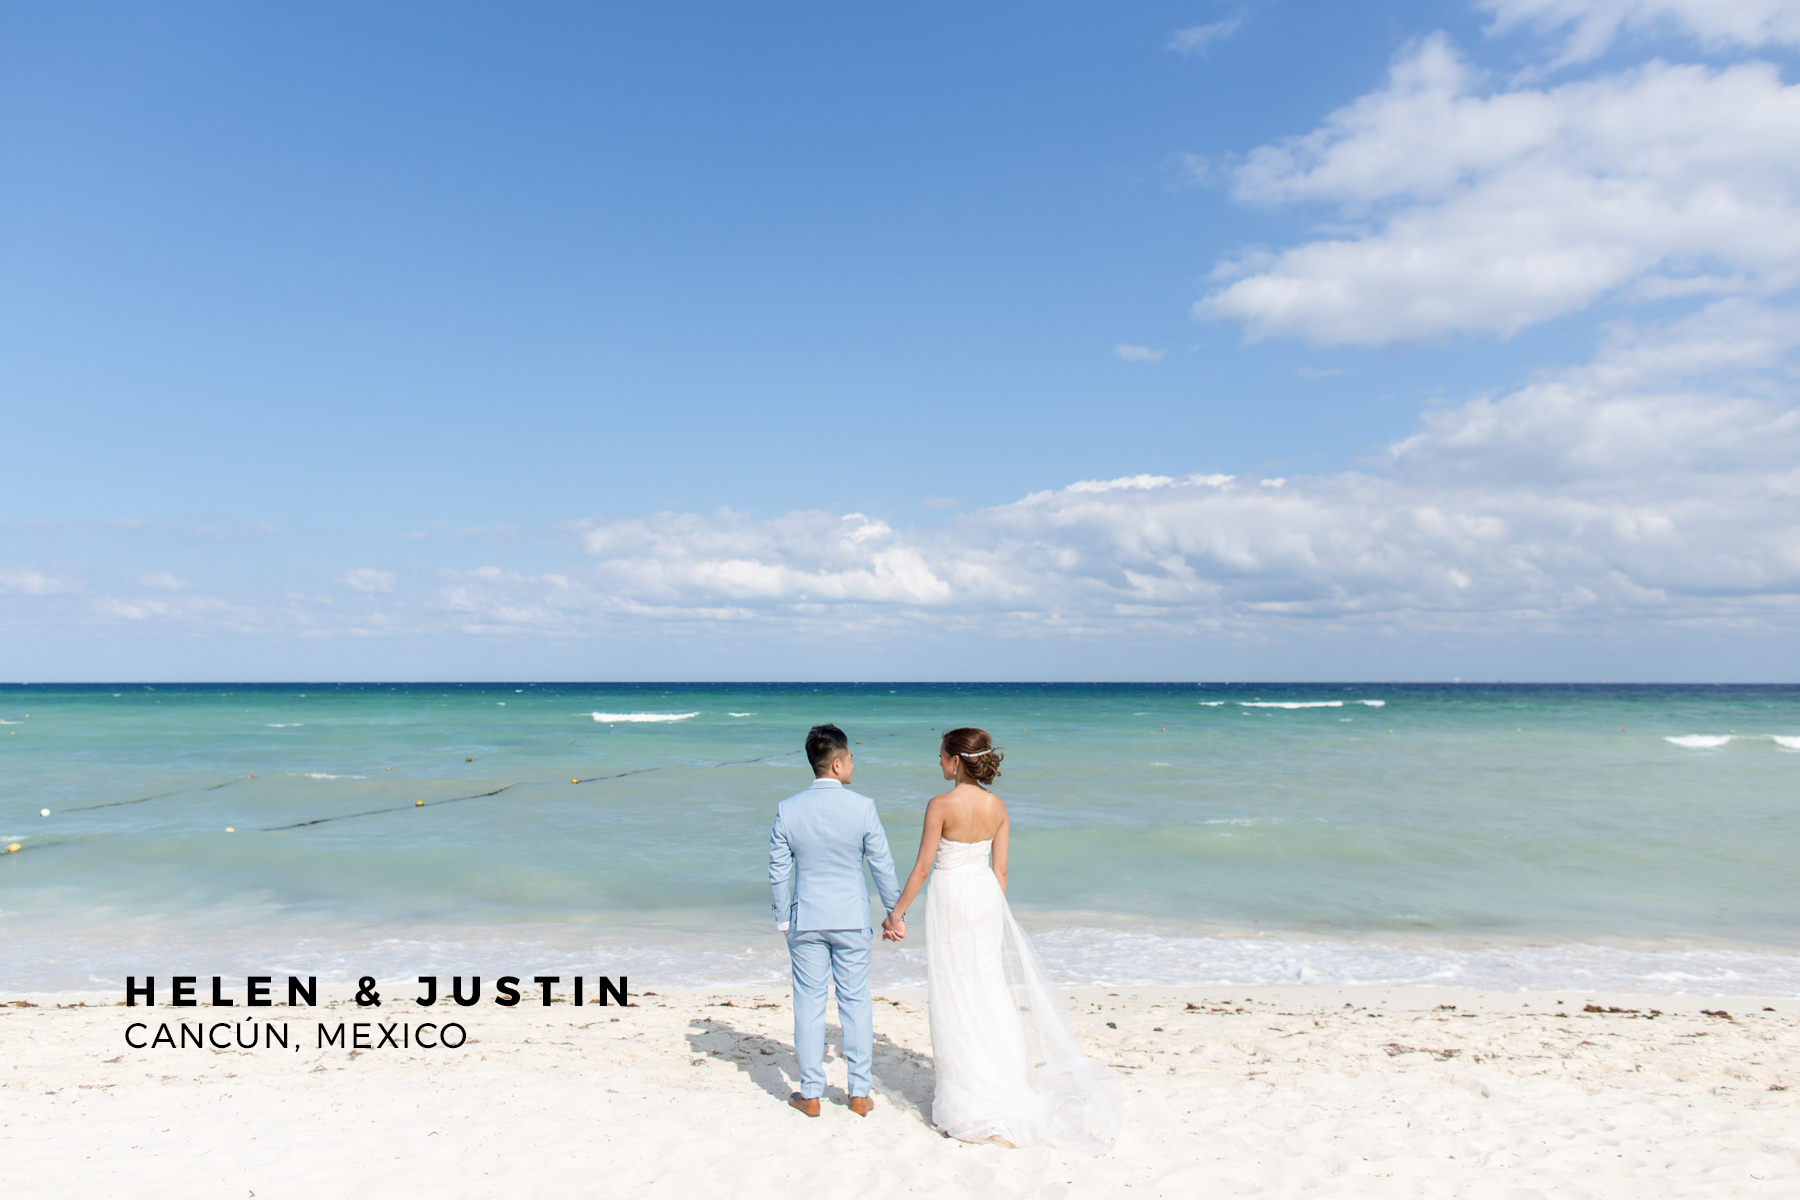 Helen and Justin